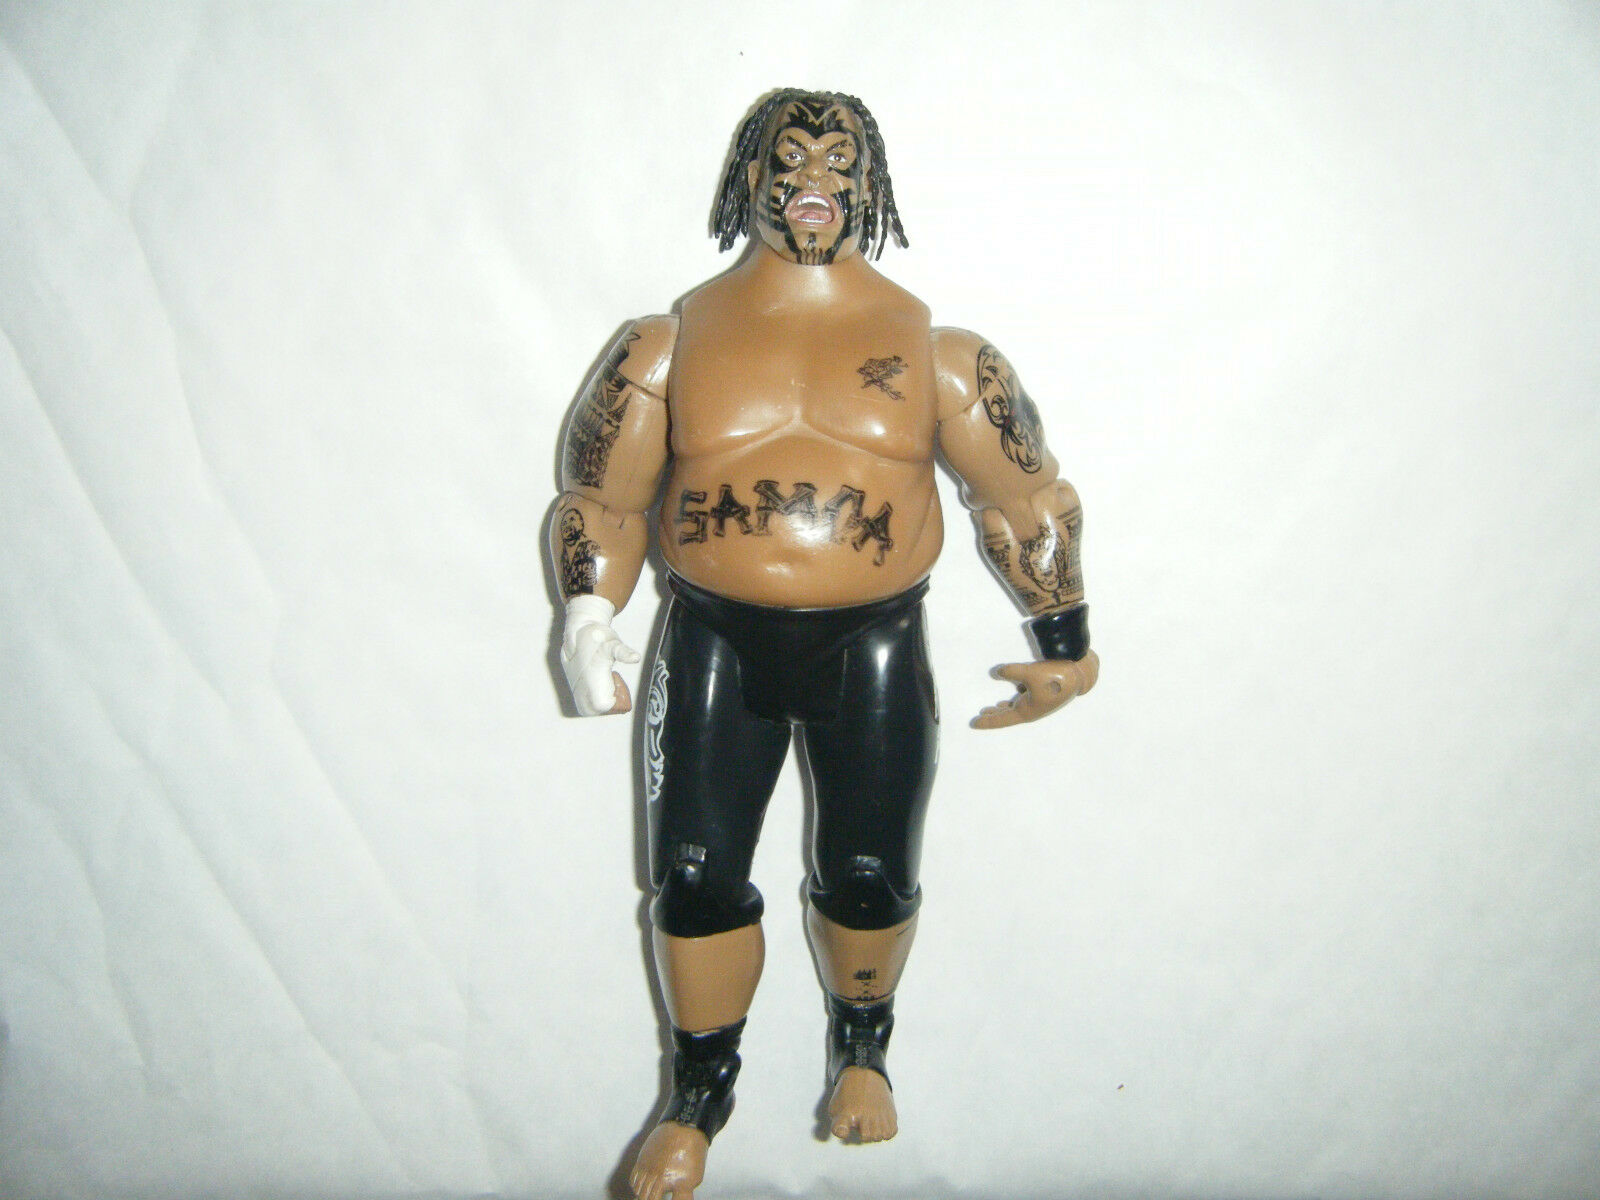 WWE CLASSIC CLASSIC CLASSIC SERIES WRESTLING ACTION FIGURE SUPERSTARS DELUXE ACCESSORIES MATTEL 7126a2